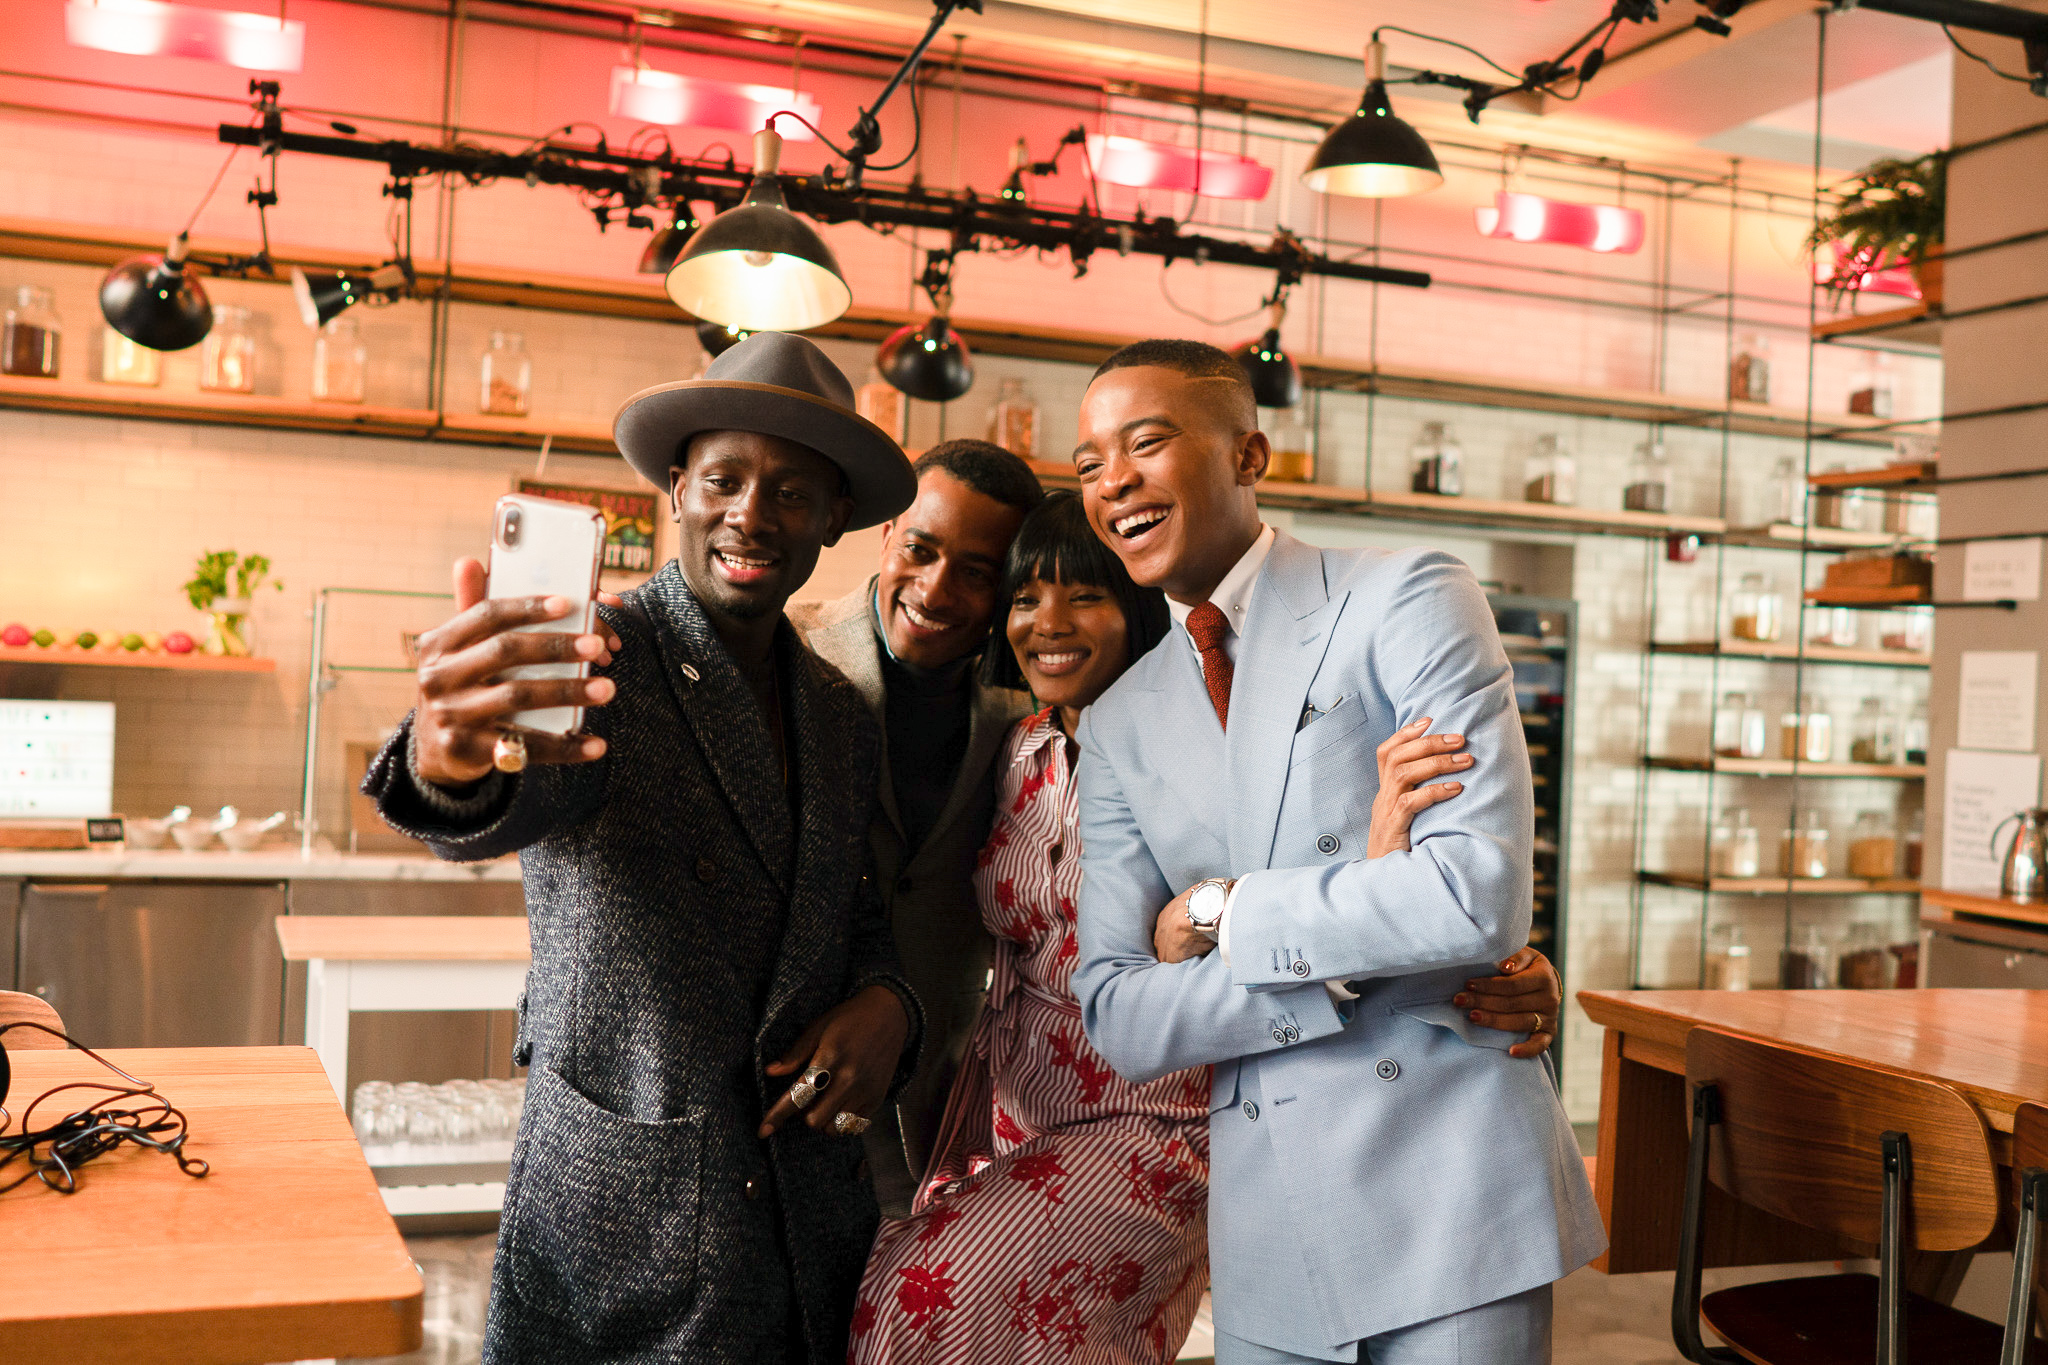 From Left To Right: Salomon DuBois Thiombiano, Marcus Richardson, Delanique Millwood, and Igee Okafor attend the BOND OFFICIAL x InStitchu Brunch at Harold's on Saturday, March 23rd, 2019. Photography by, Inexora Media.